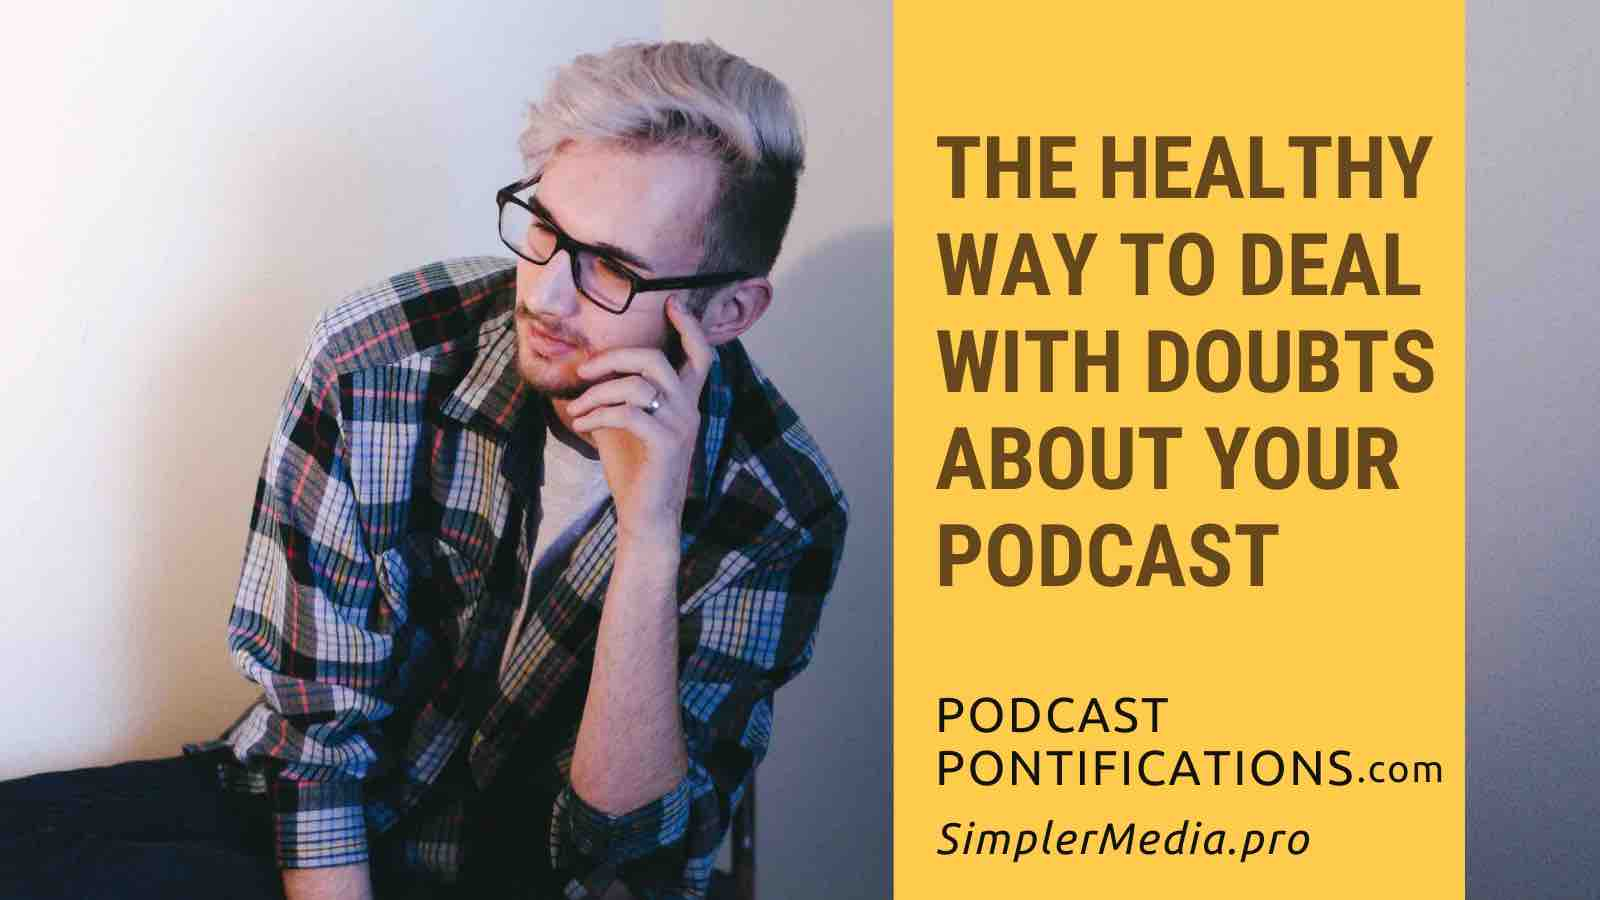 The Healthy Way To Deal With Doubts About Your Podcast